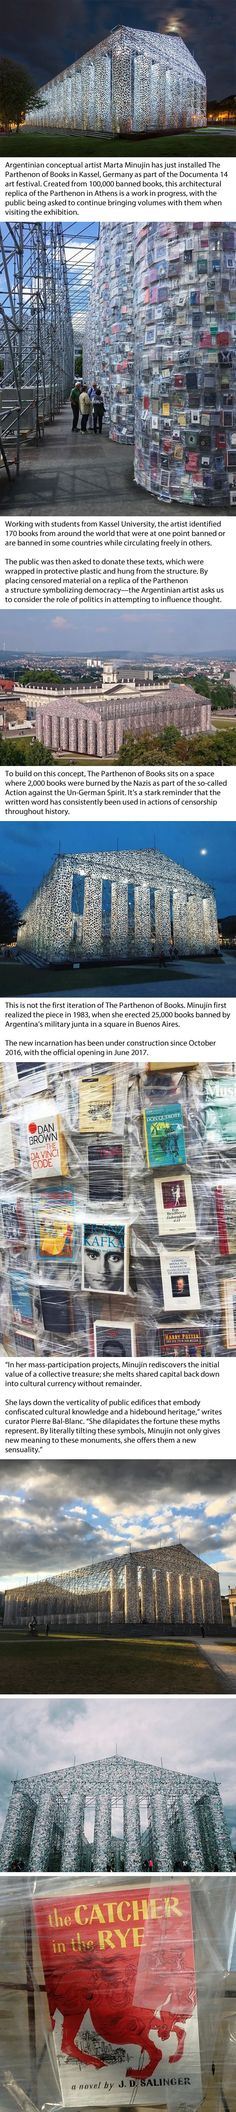 Why Are They Burning Books In South Wales Books Literature And - Artist uses banned books to create monumental sculpture against political oppression